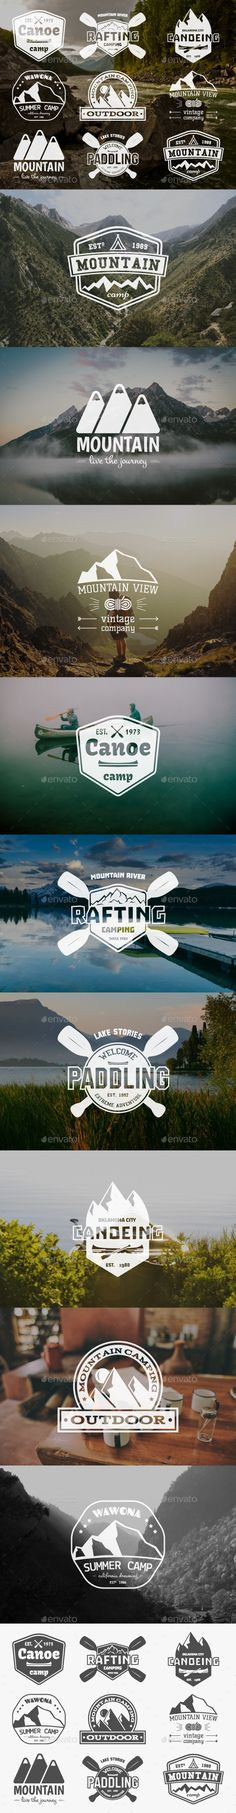 9 Outdoor Badges and Labels. - Badges & Stickers Web Elements